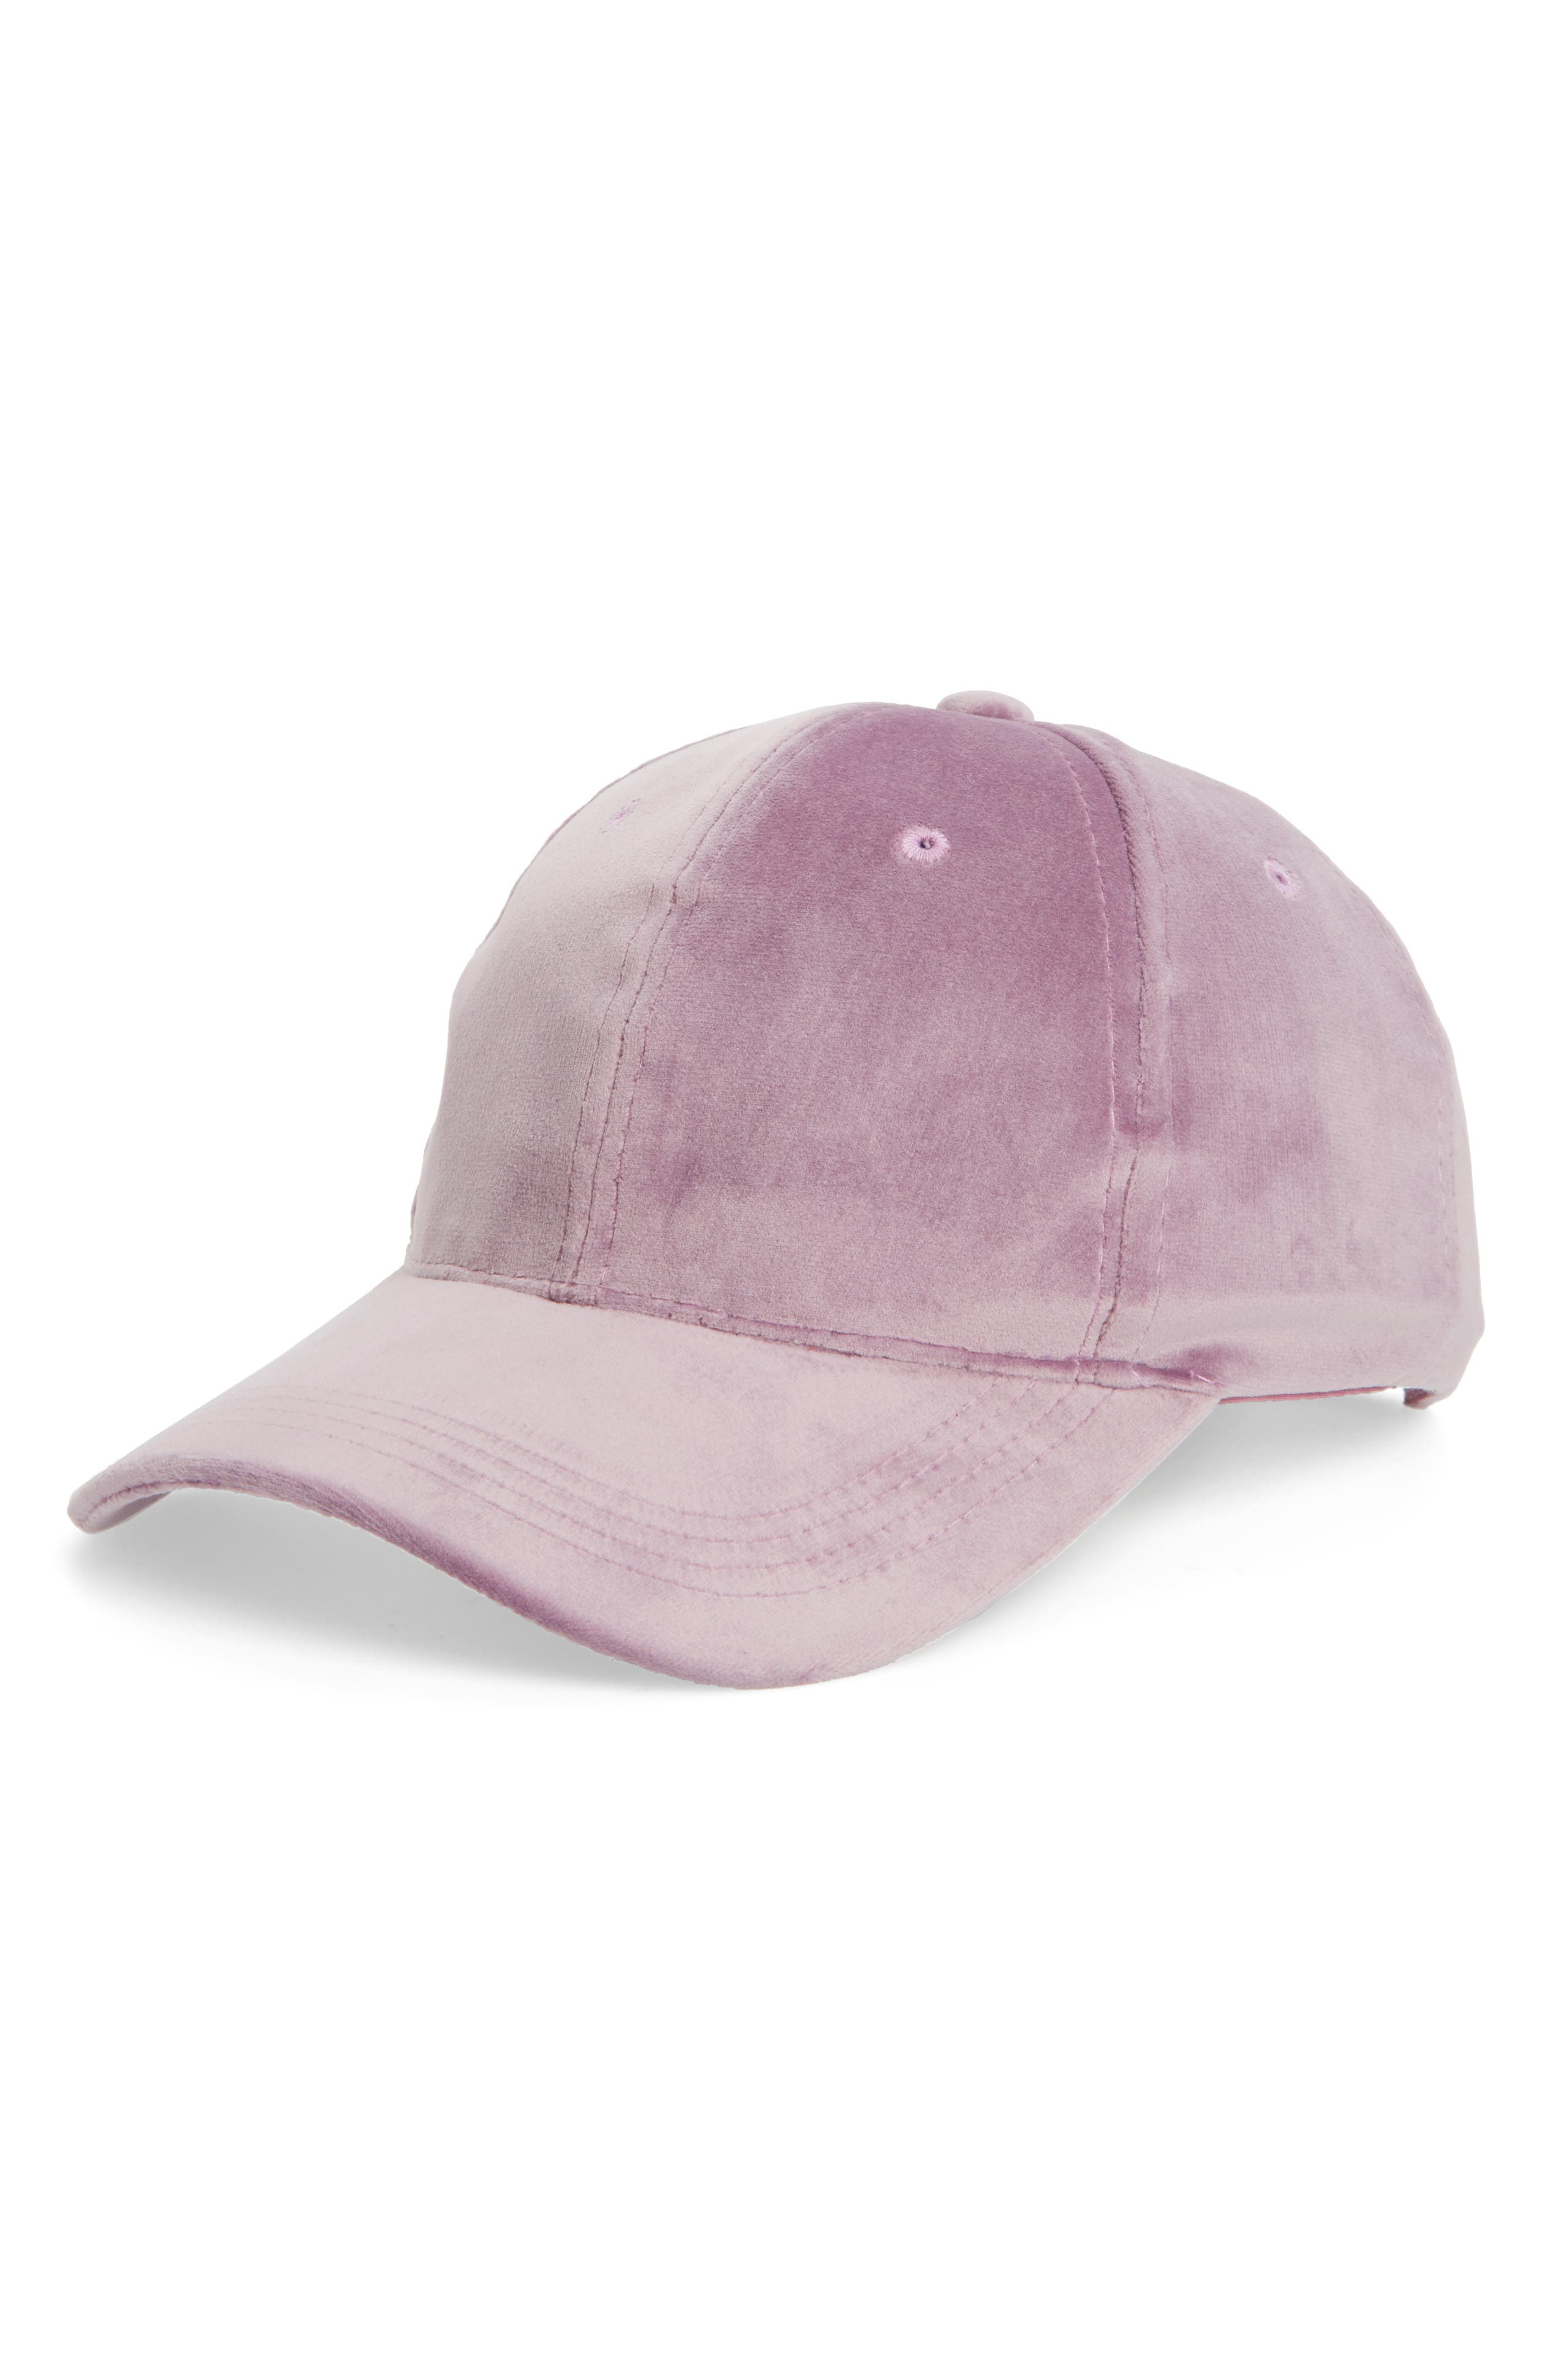 Main Image - Fantasia Velvet Ball Cap